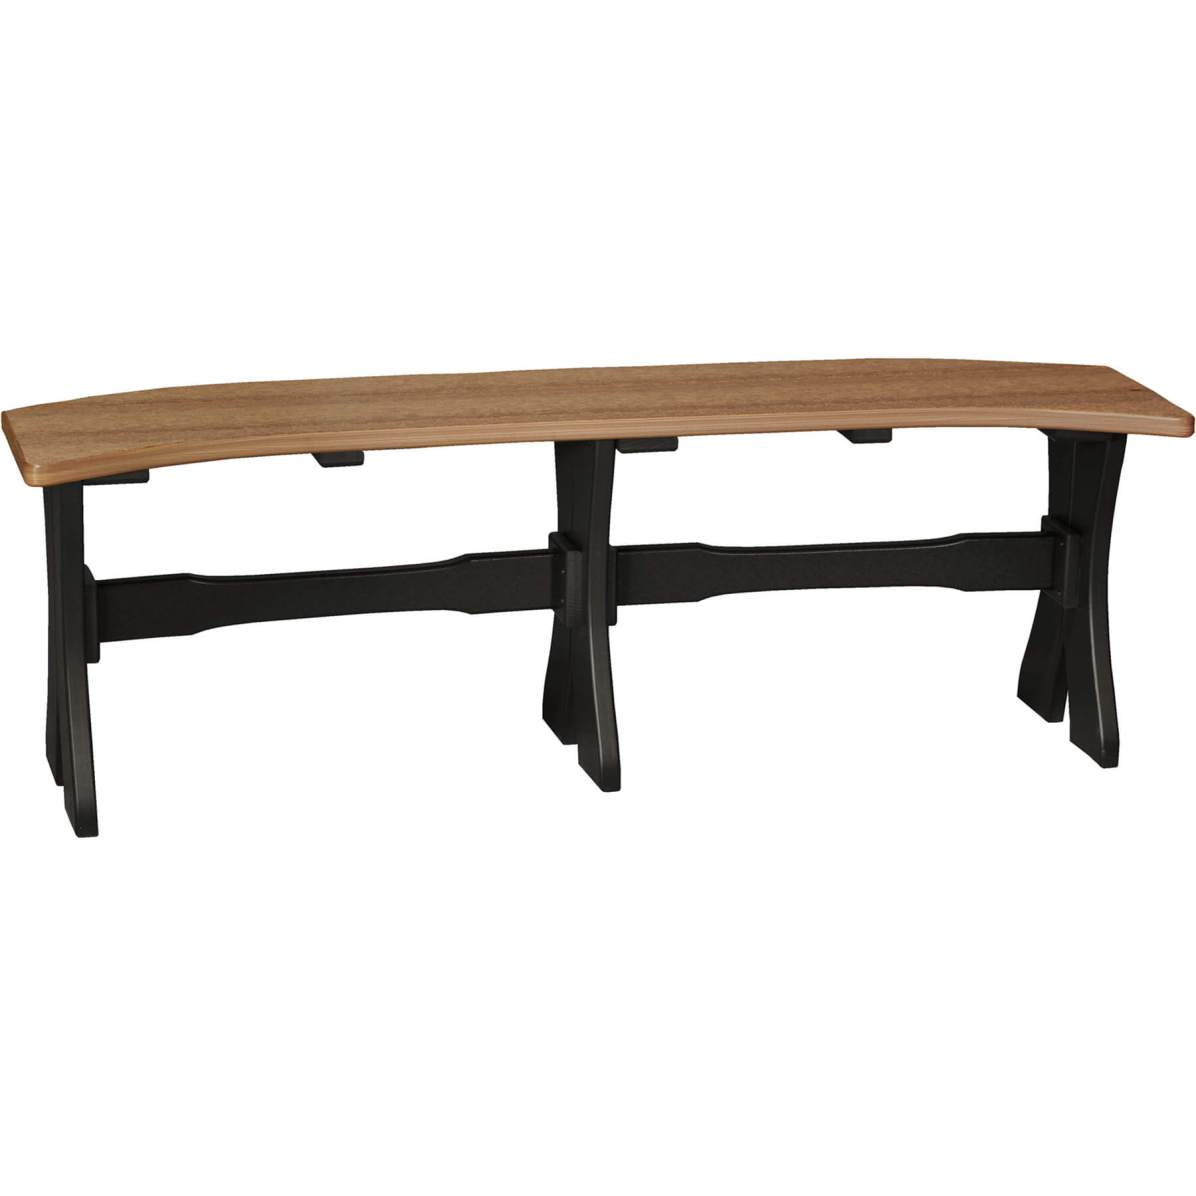 P52TBAMB Poly 52'' Table Bench (Antique Mahogany & Black)